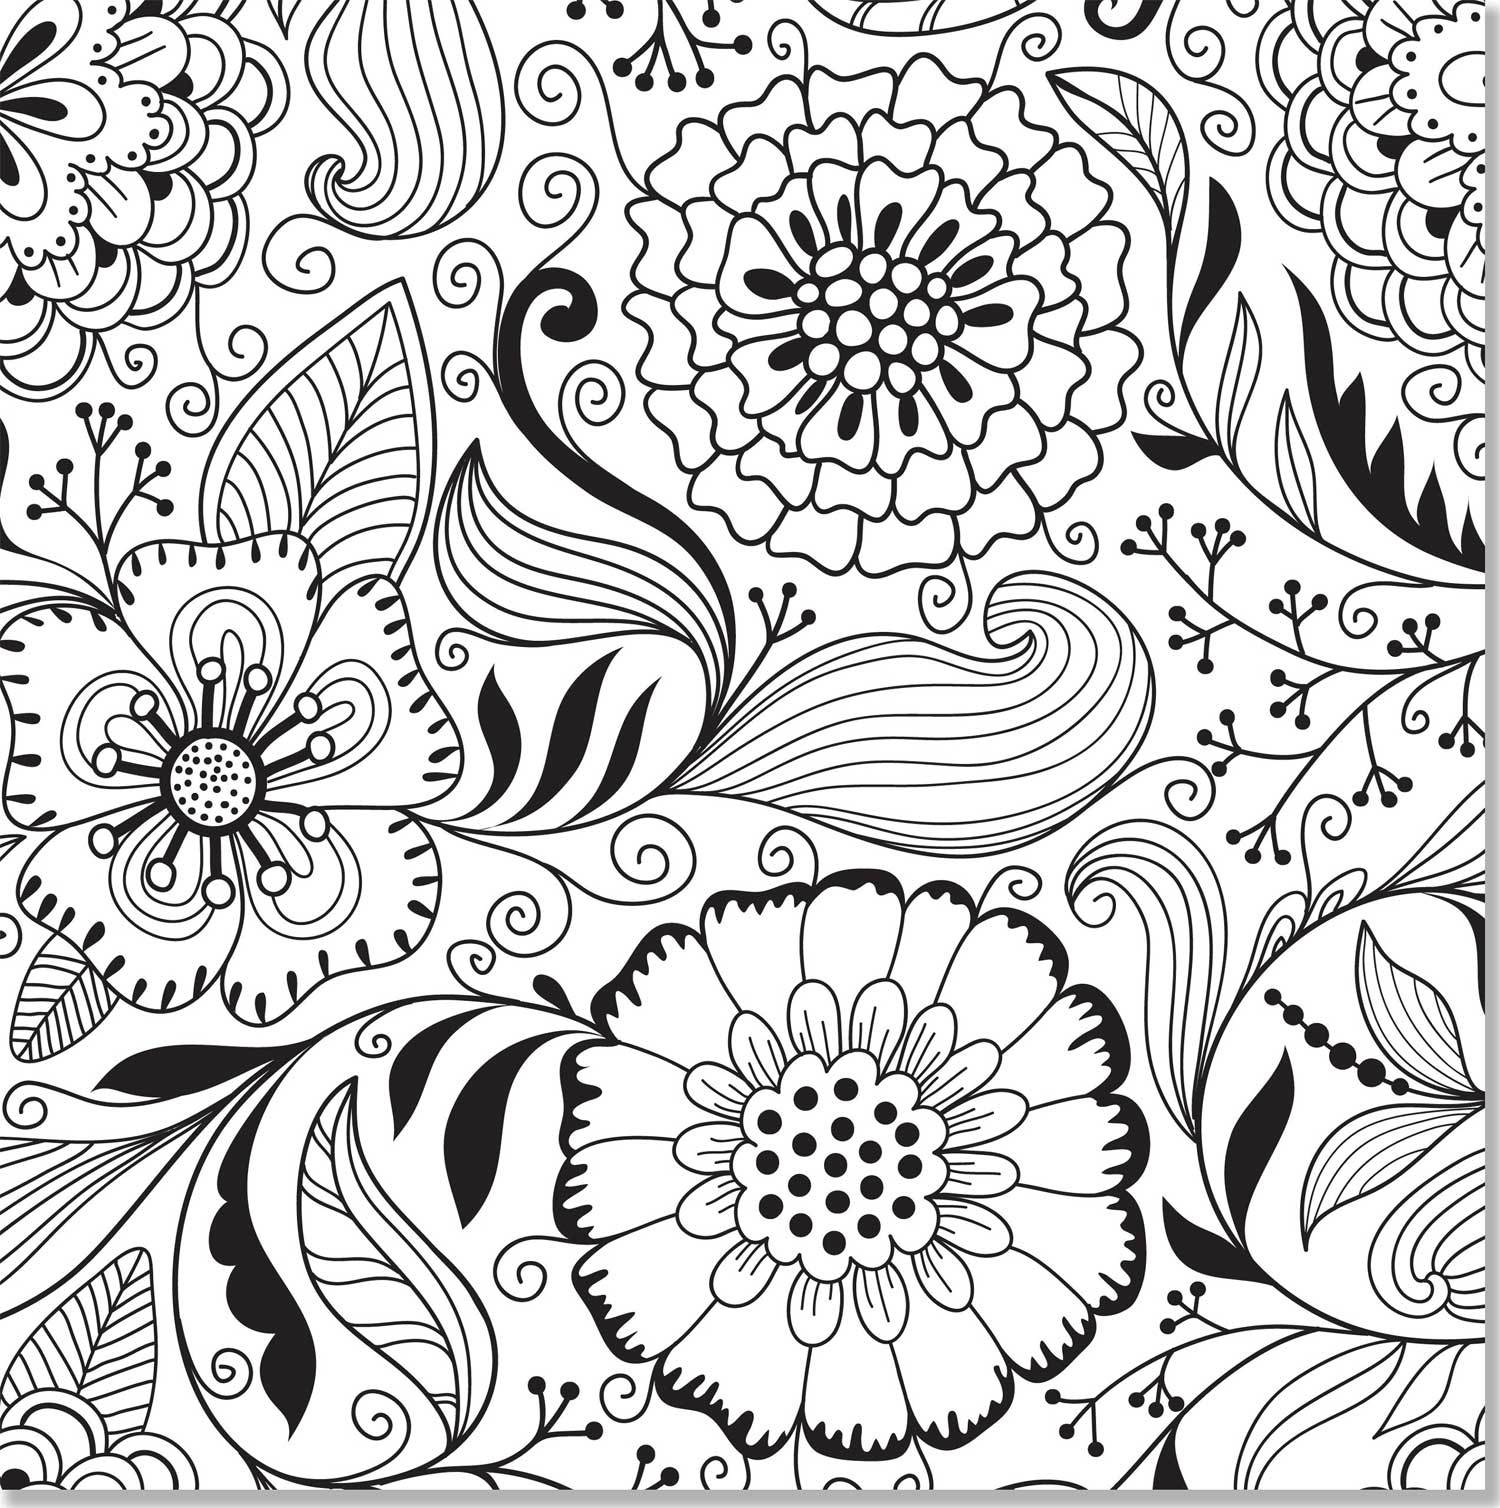 1500x1508 Awesome Printable Coloring Pages Adults Only Many Interesting